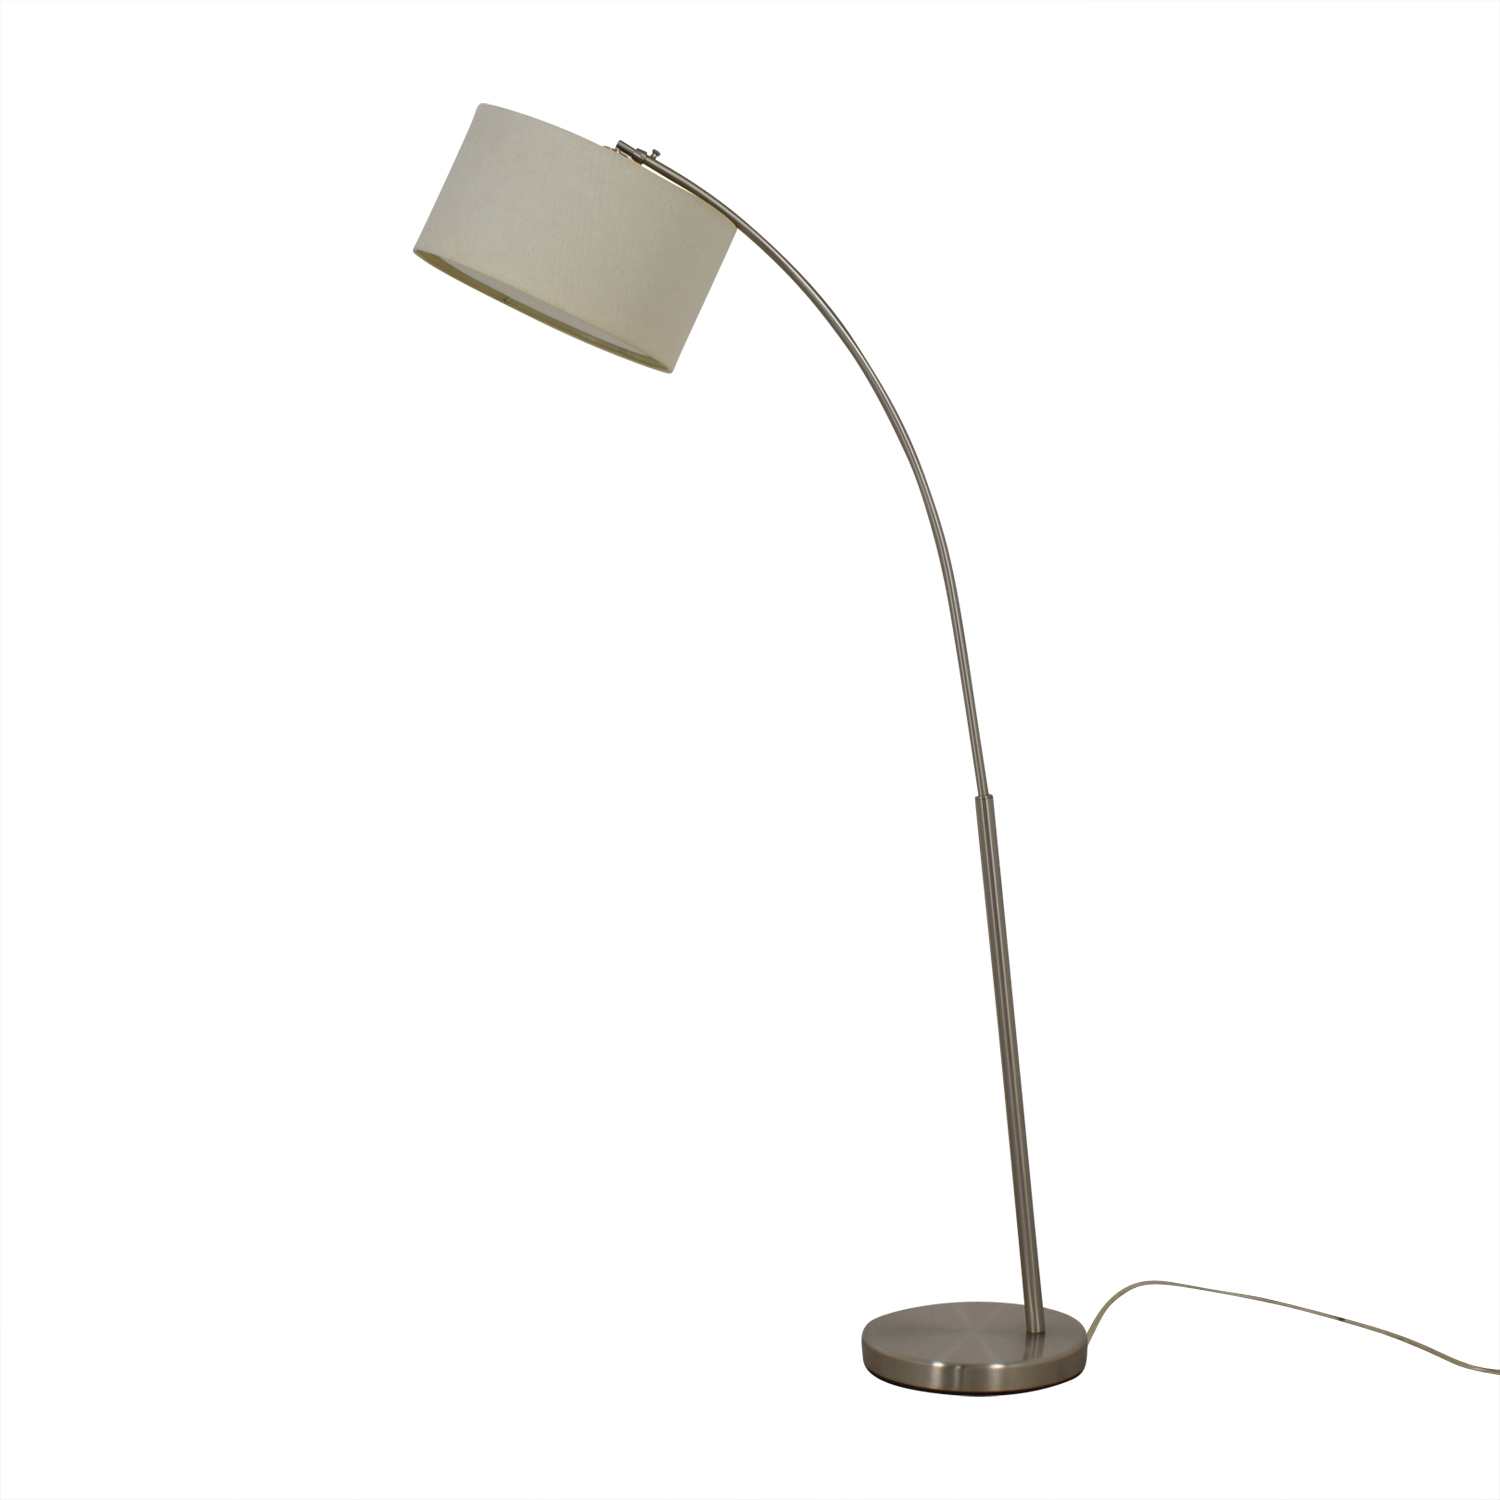 CB2 Chrome Floor Lamp / Decor